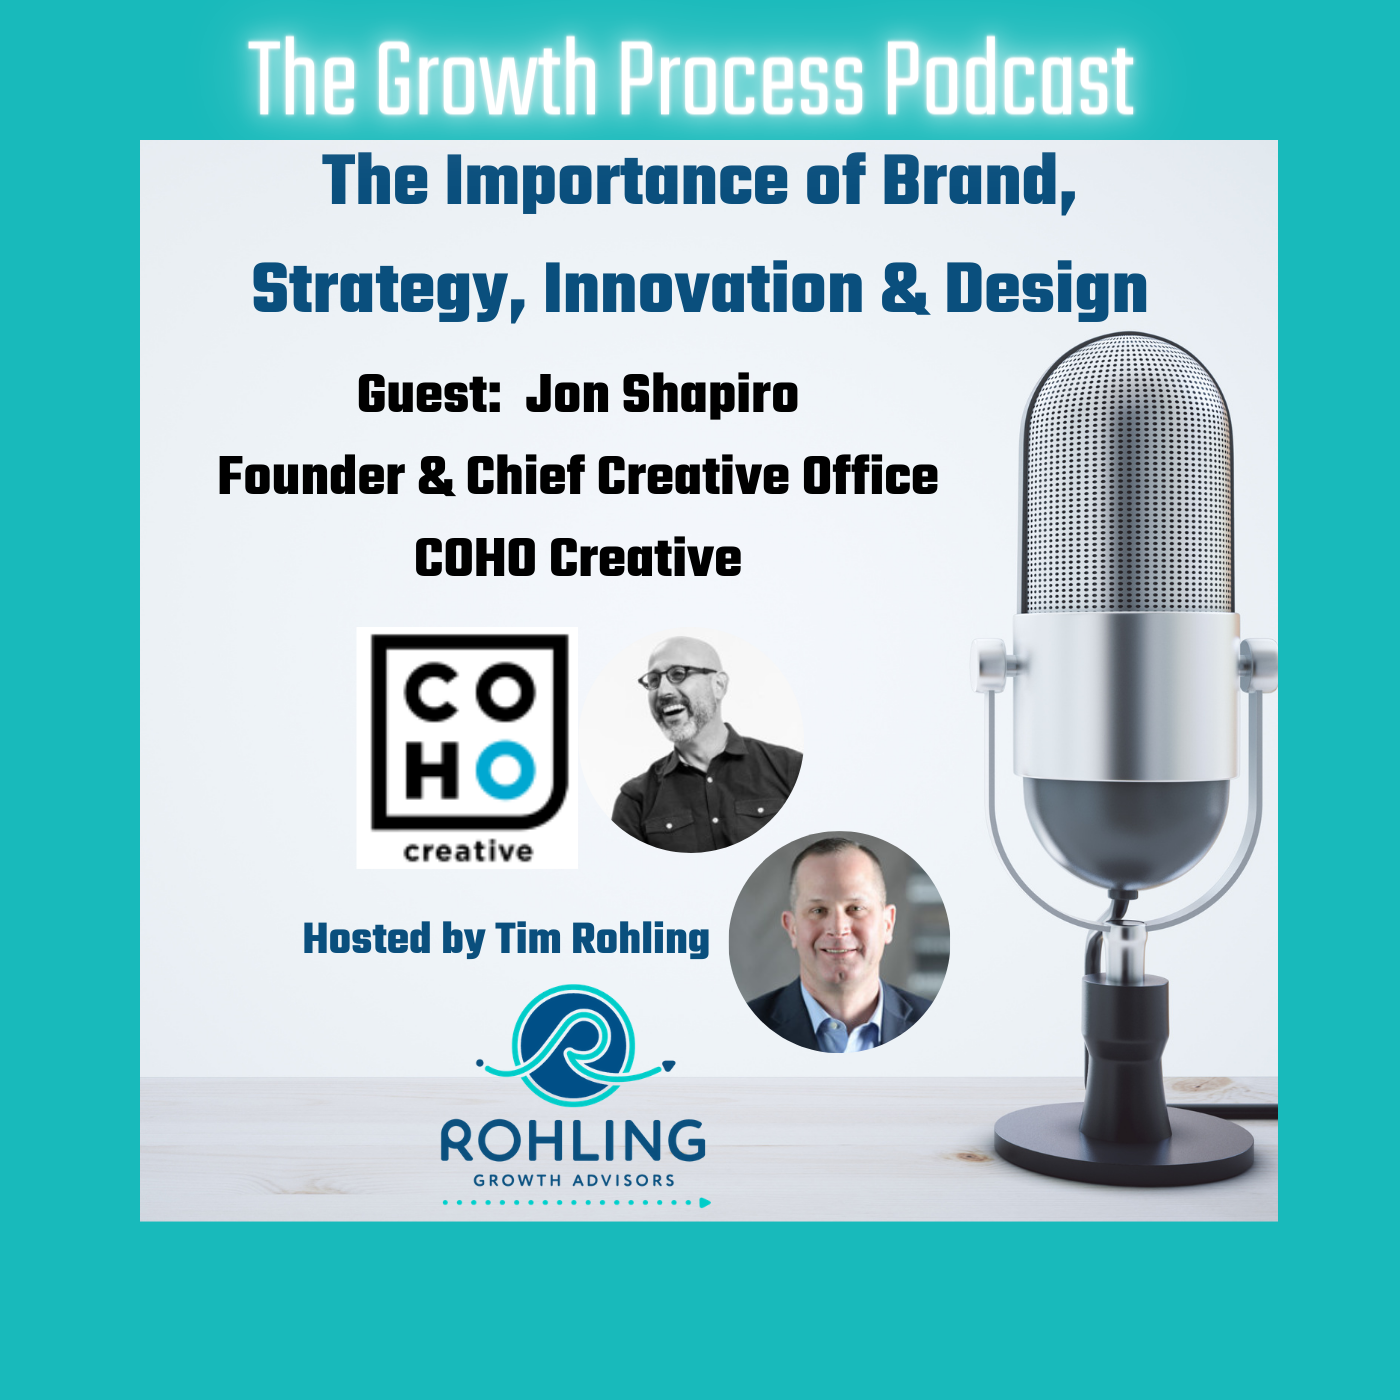 Brand & Innovation for Business Growth.  COHO Creative.  Rohling Growth Advisors